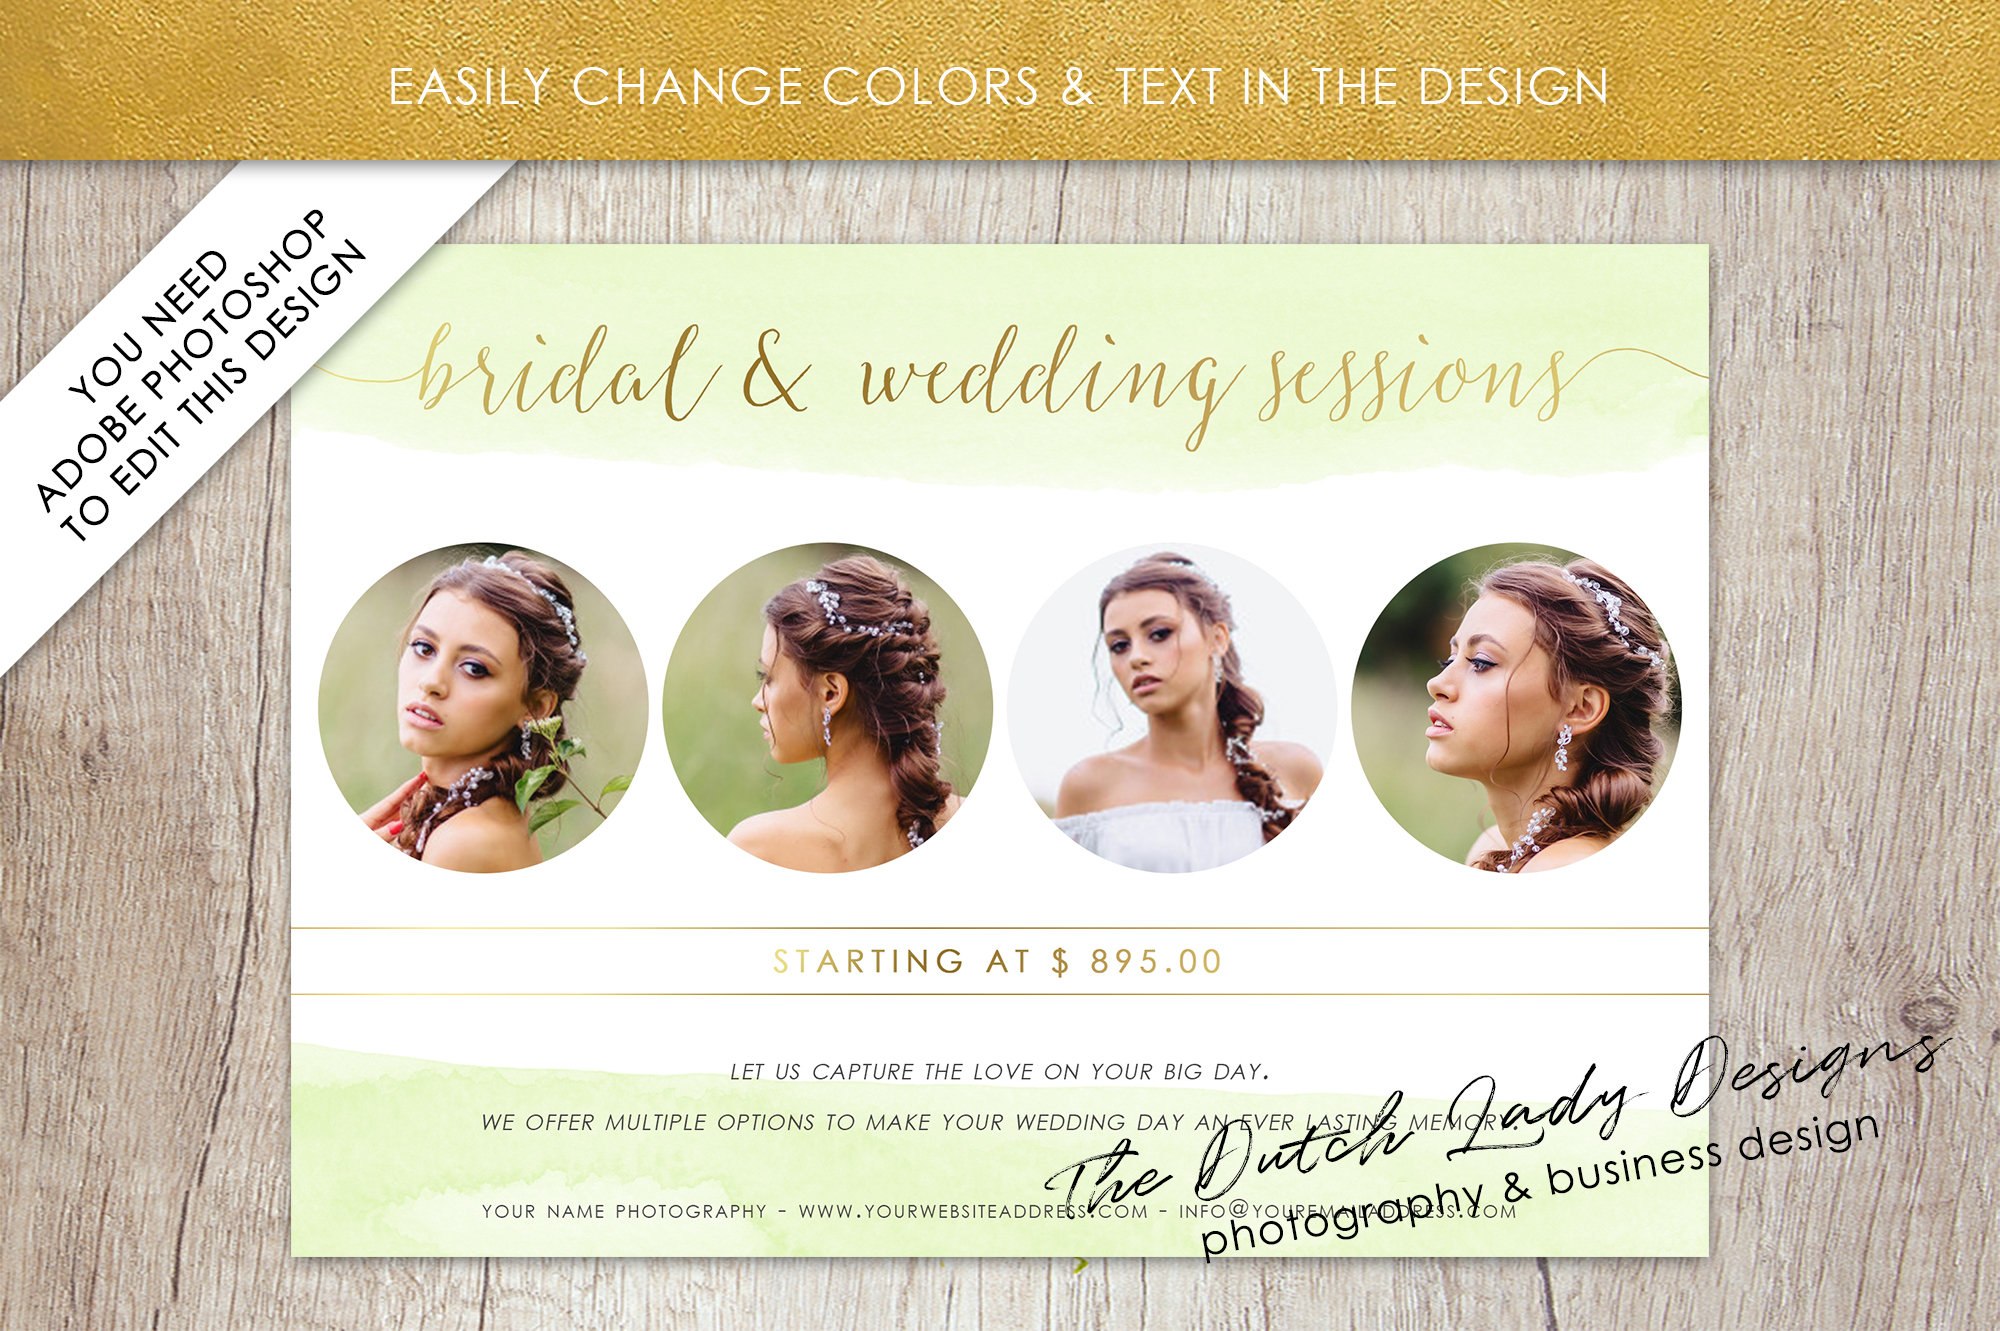 PSD Wedding Photo Session Card Template - Design #34 example image 4